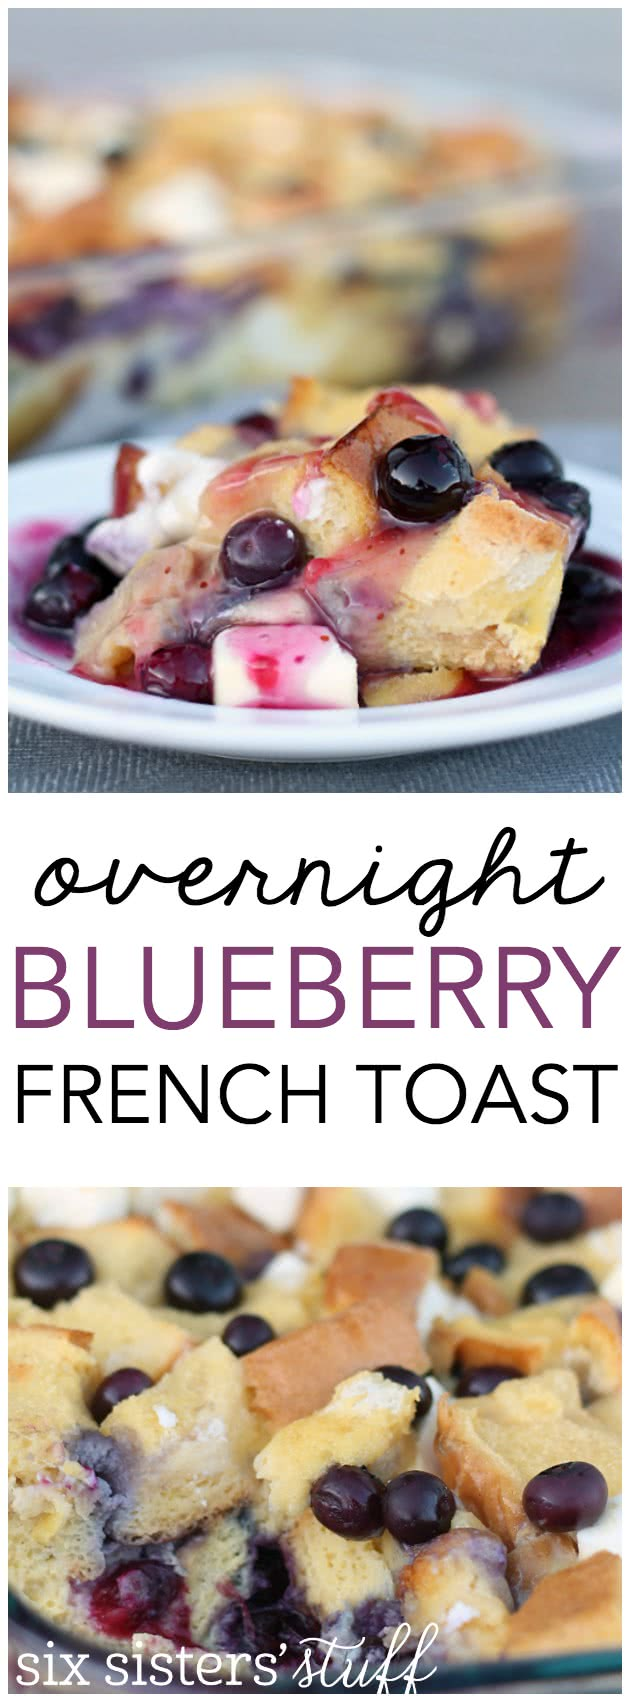 Overnight Blueberry French Toast Bake from SixSisterStuff.com